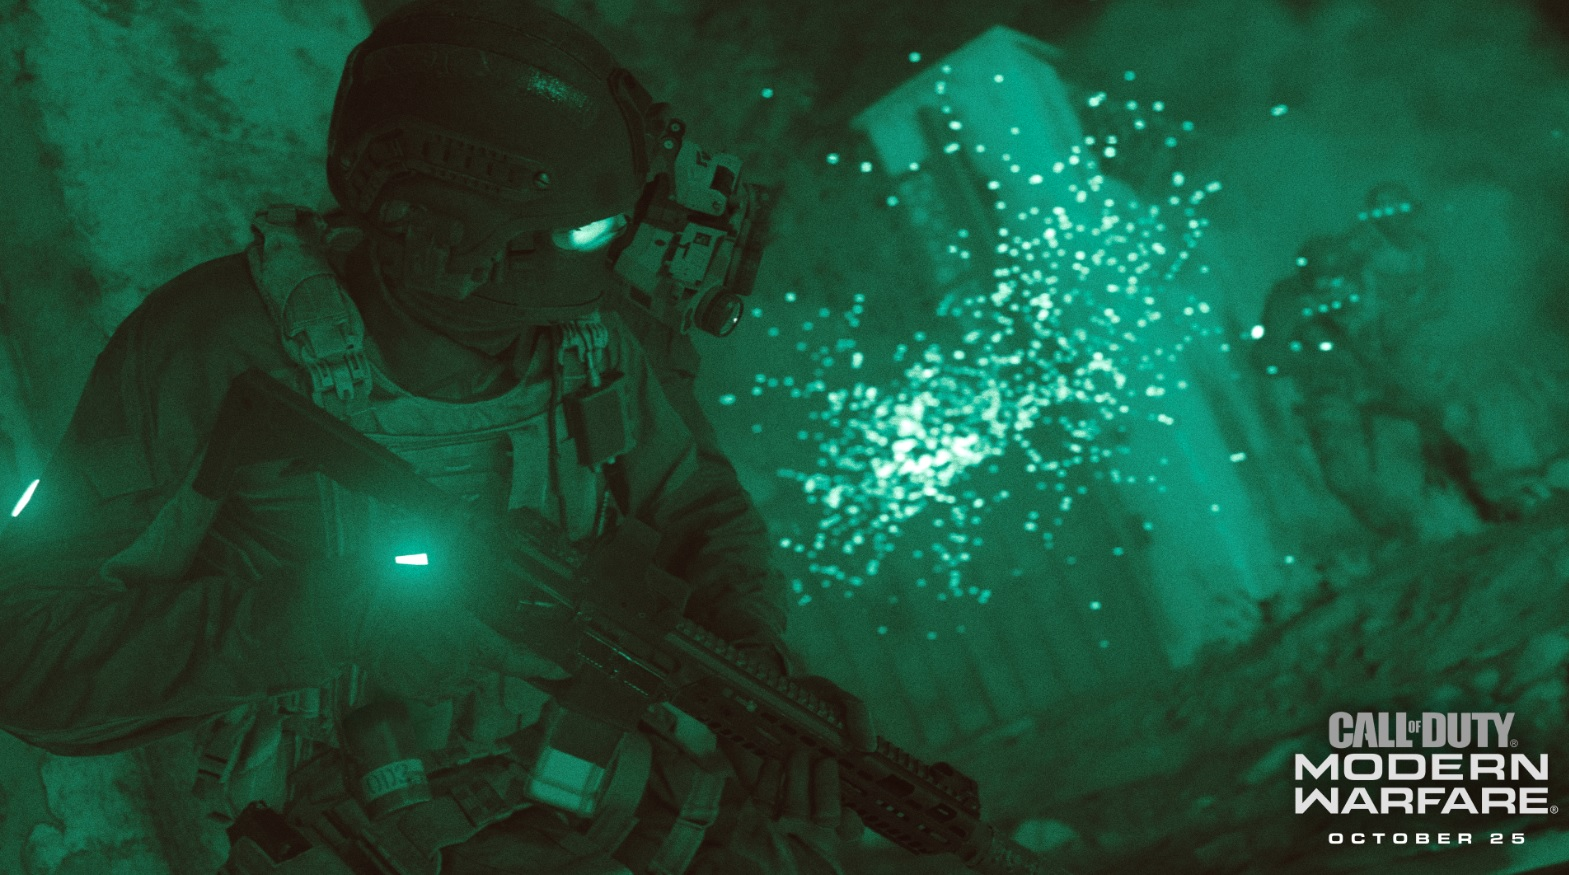 Call of Duty: Modern Warfare's photogrammetry captures